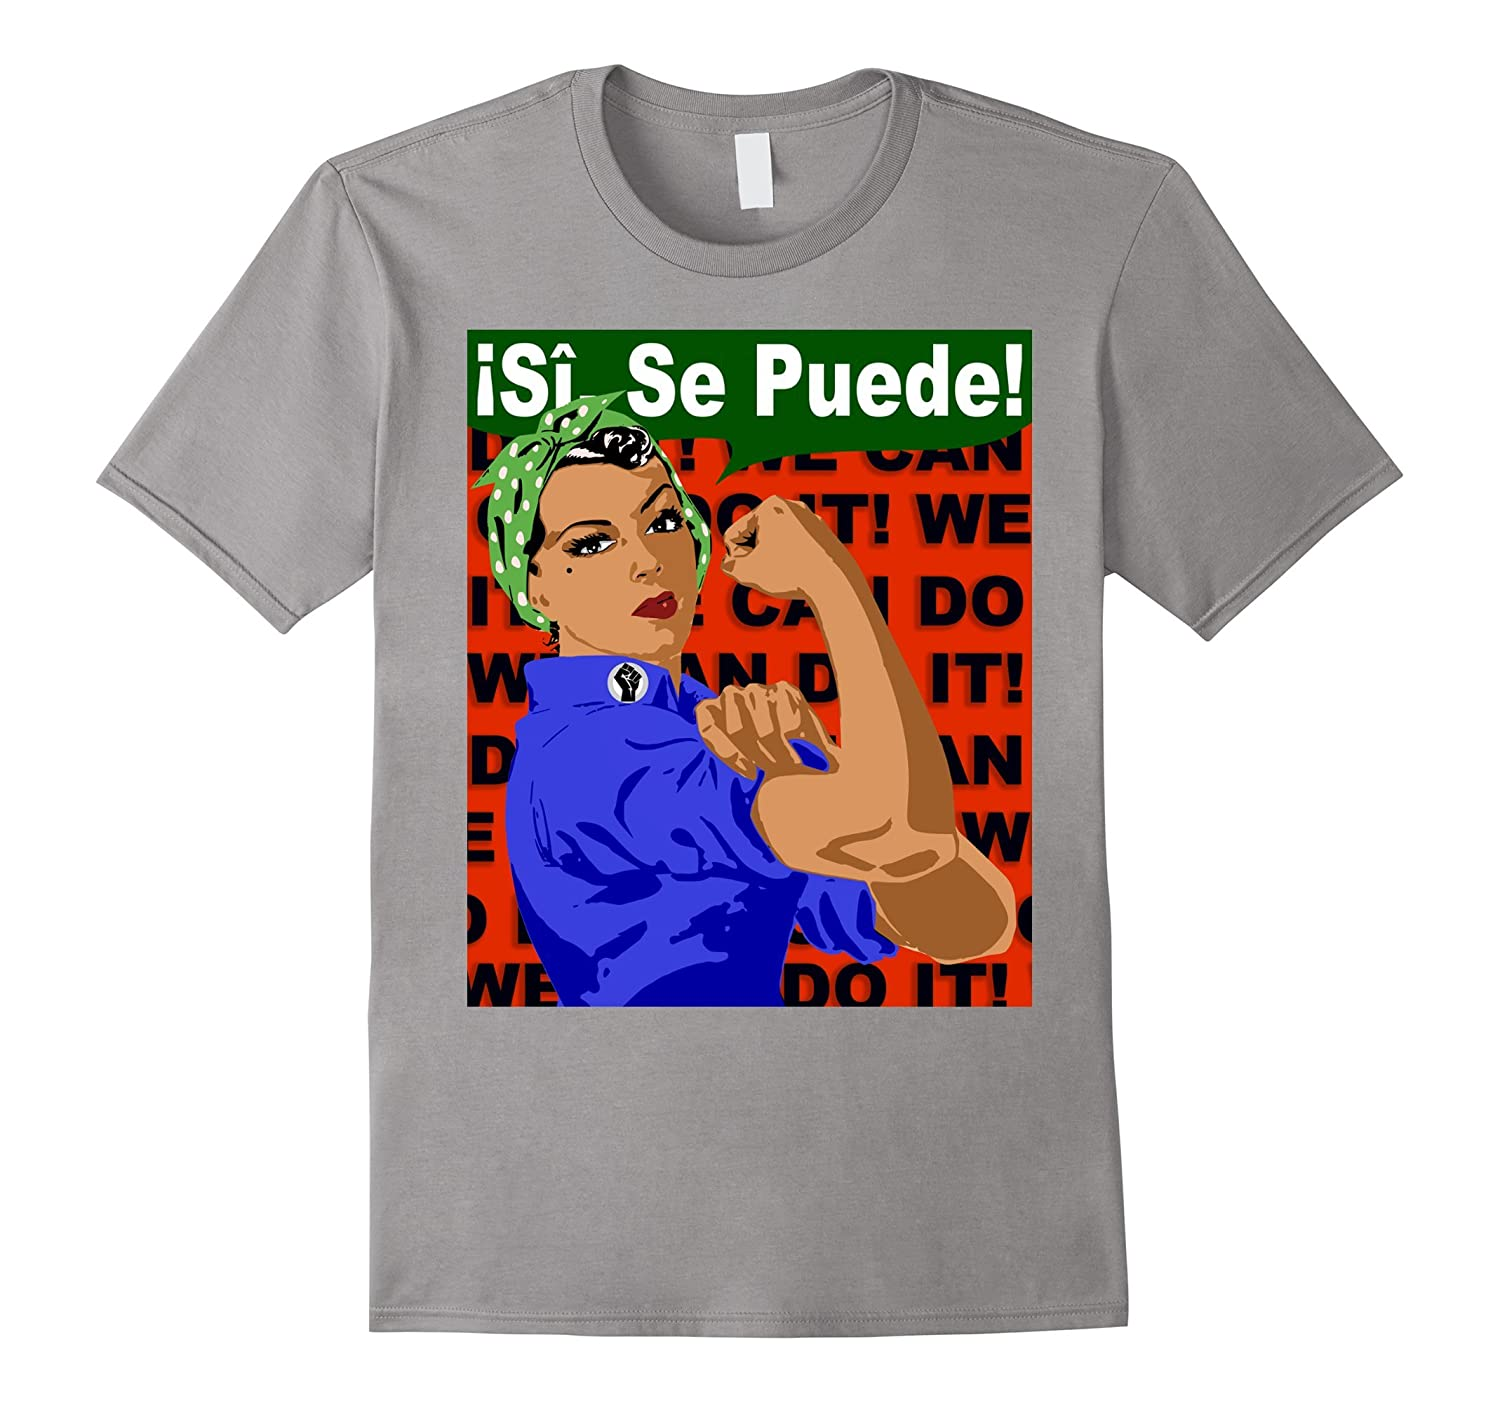 Si Se Puede, Latina Girl Power Rosie The Riveter T-shirt